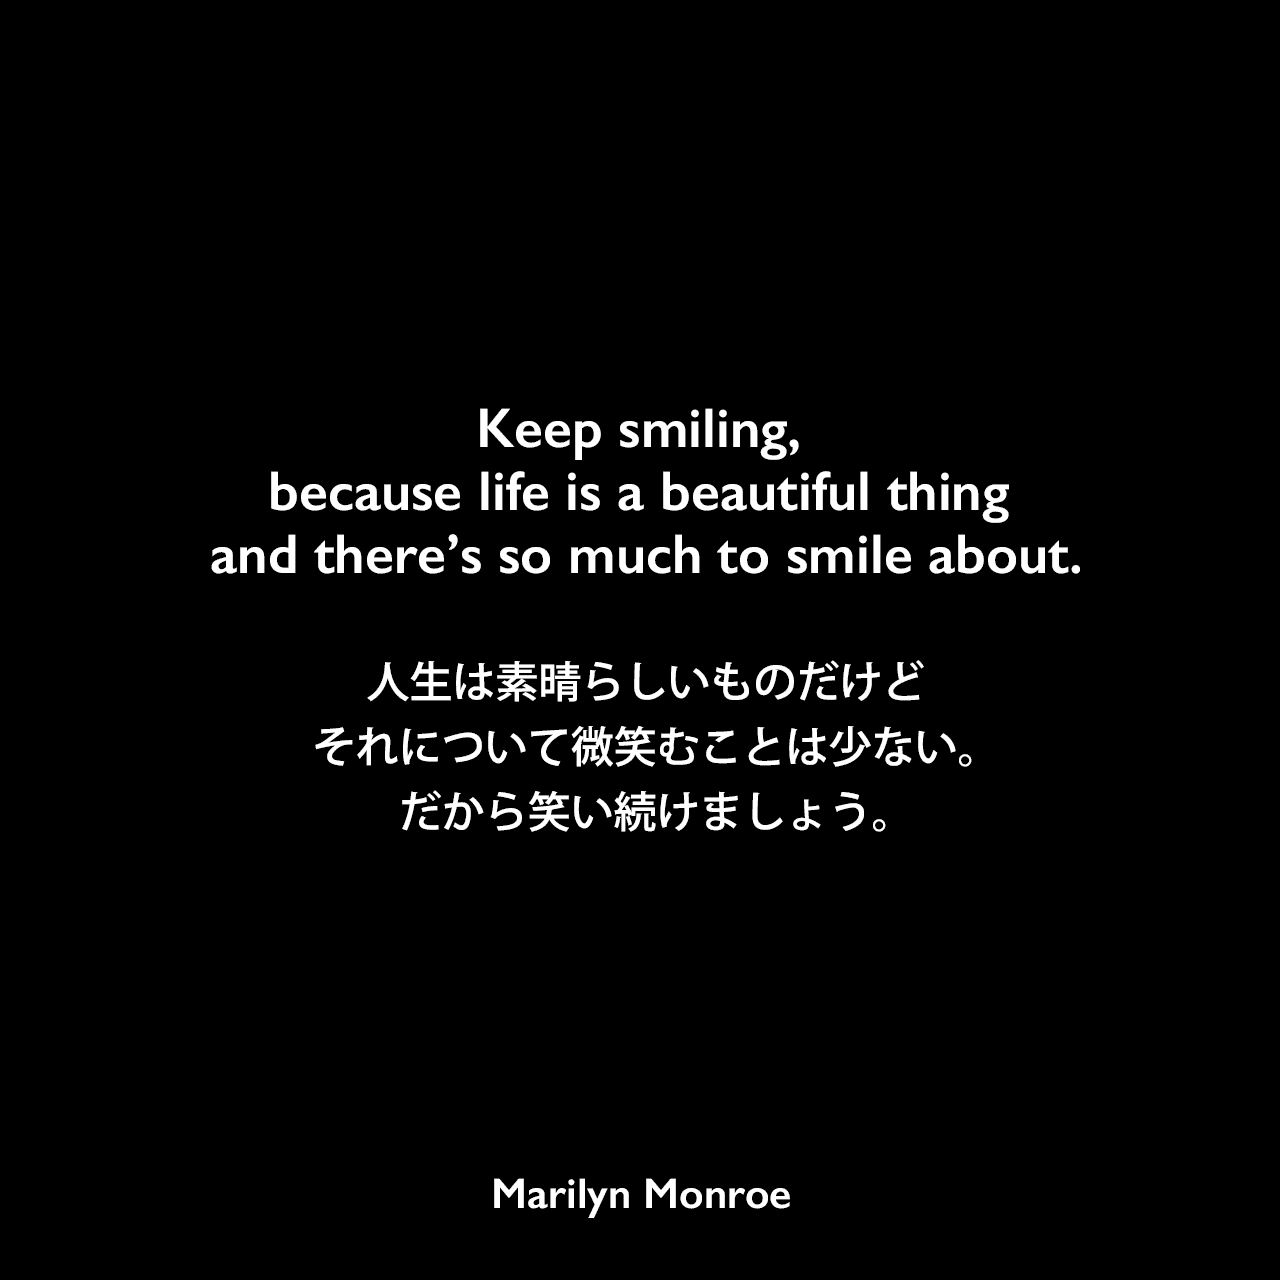 Keep smiling, because life is a beautiful thing and there's so much to smile about.人生は素晴らしいものだけどそれについて微笑むことは少ない。だから笑い続けましょう。